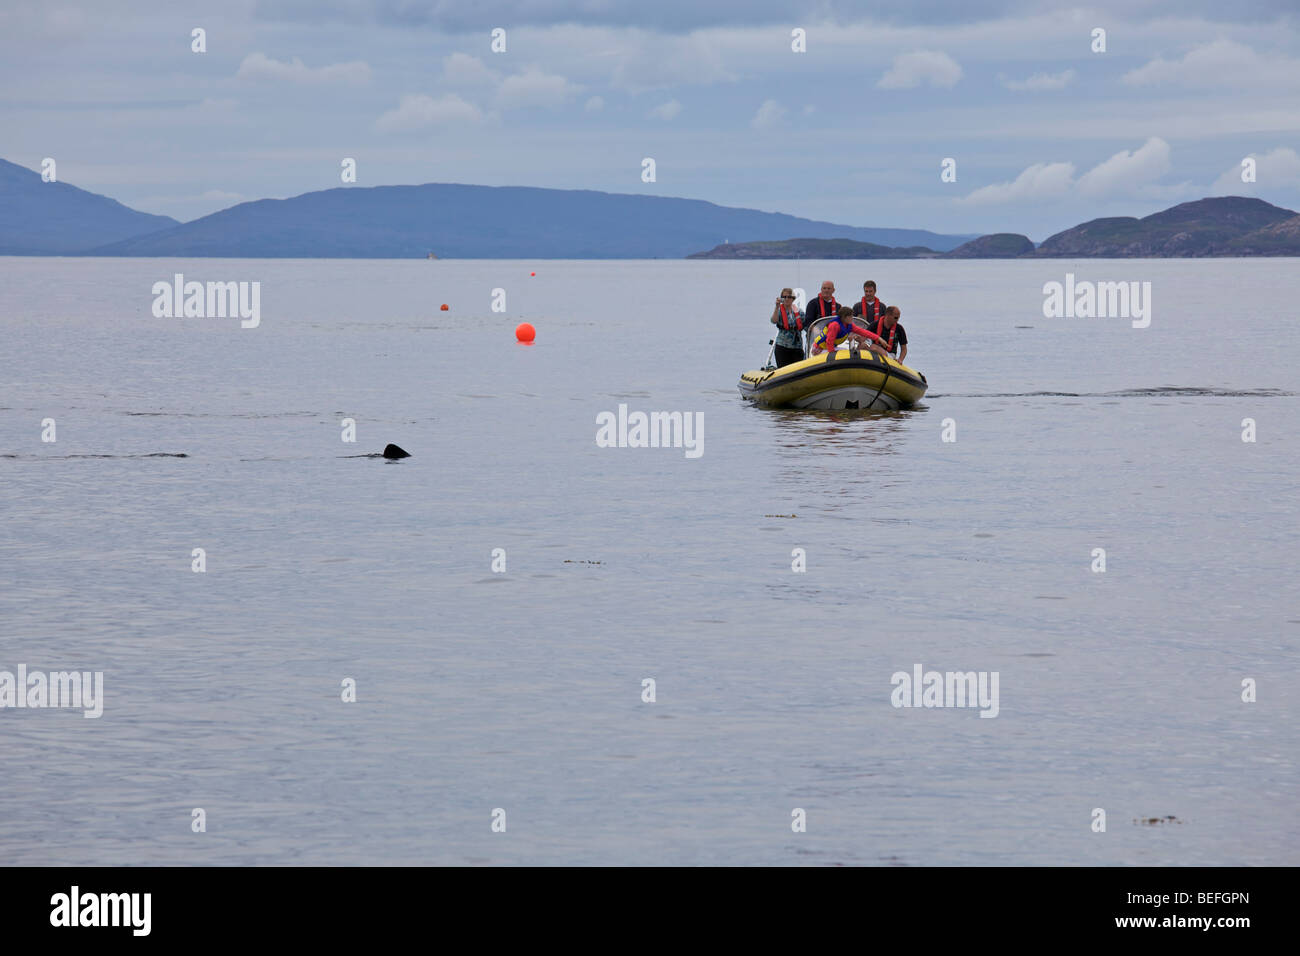 Whale watchers on a boat in the Isle of Skye, Scotland - Stock Image